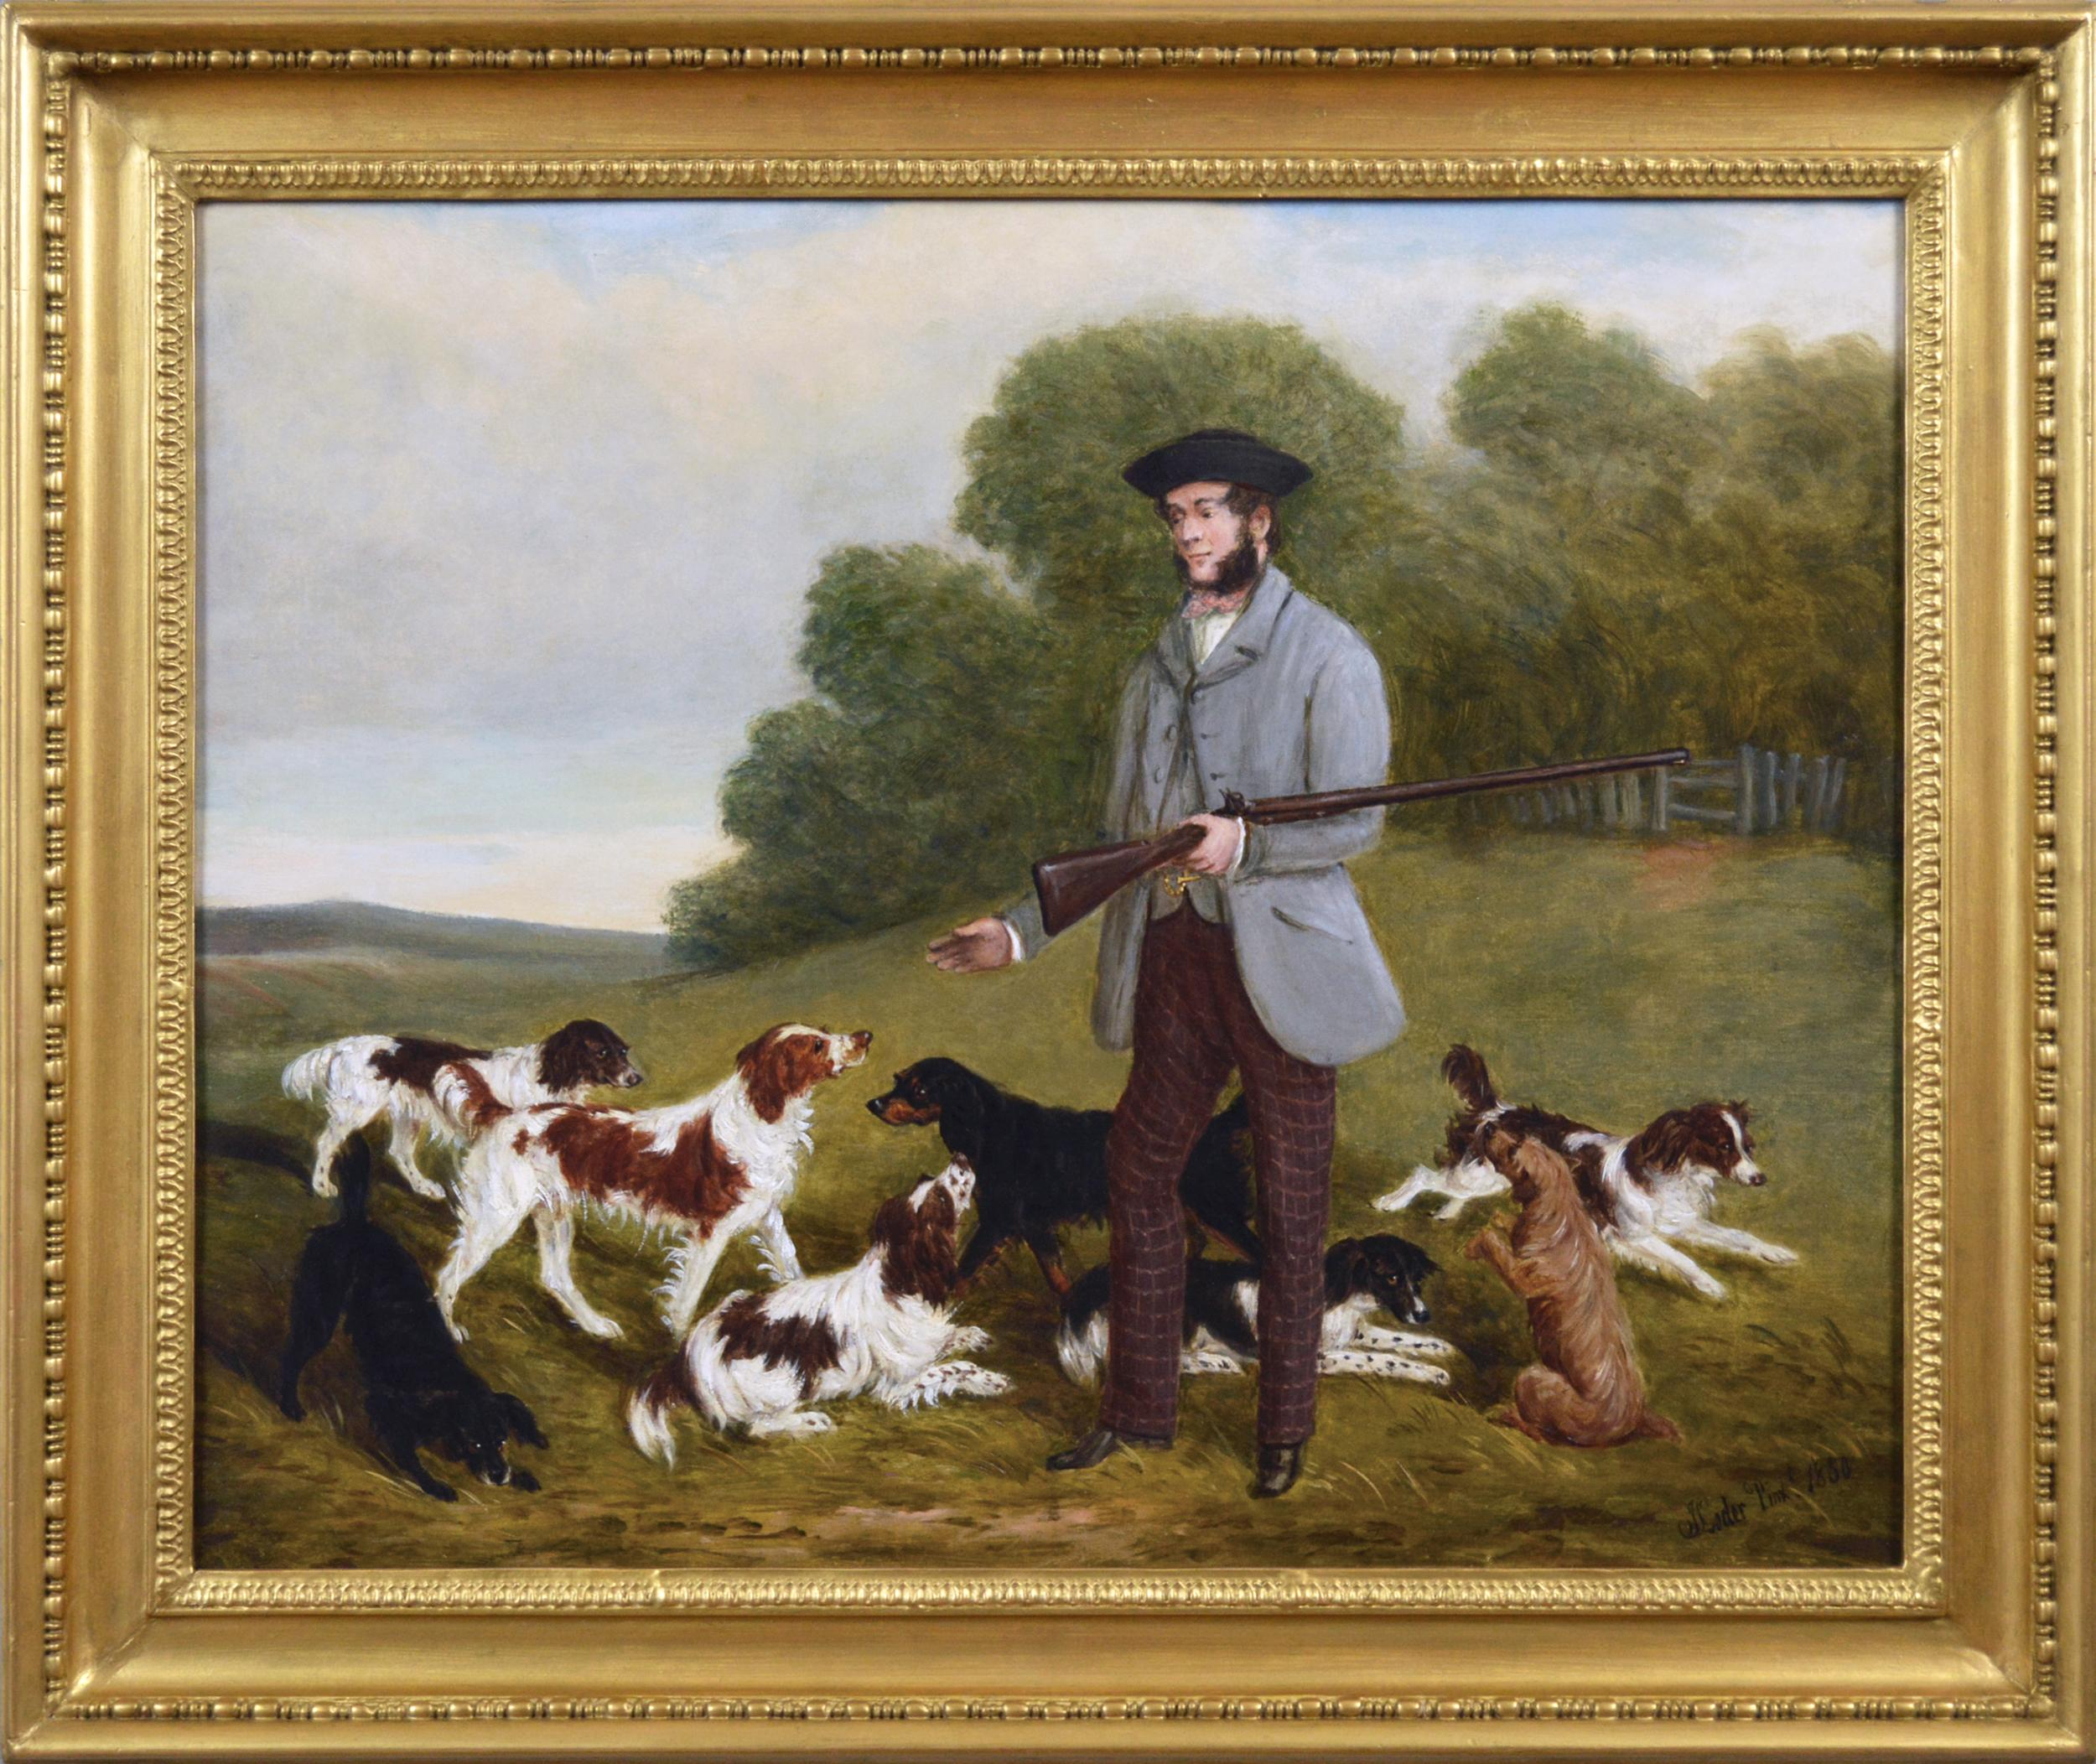 19th Century sporting oil painting of a gamekeeper with dogs